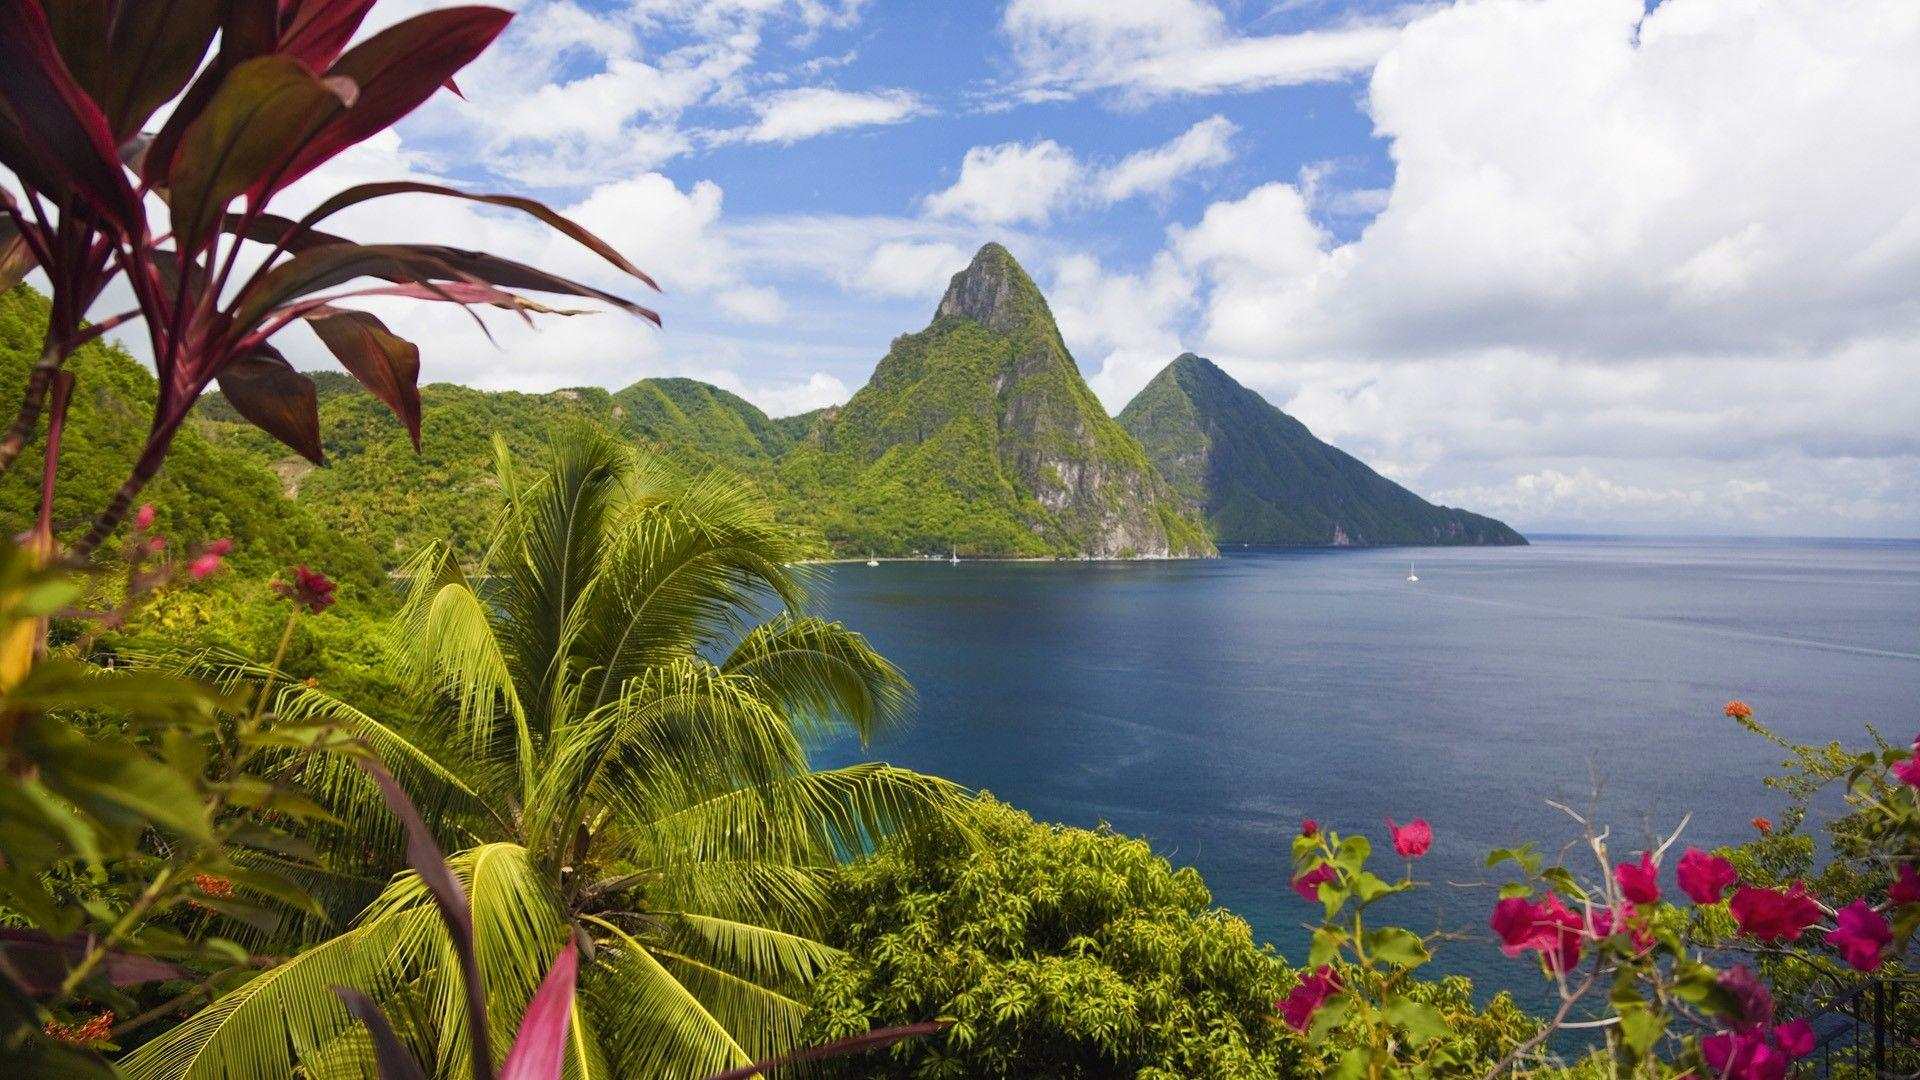 Palm trees bay sea saint lucia wallpapers